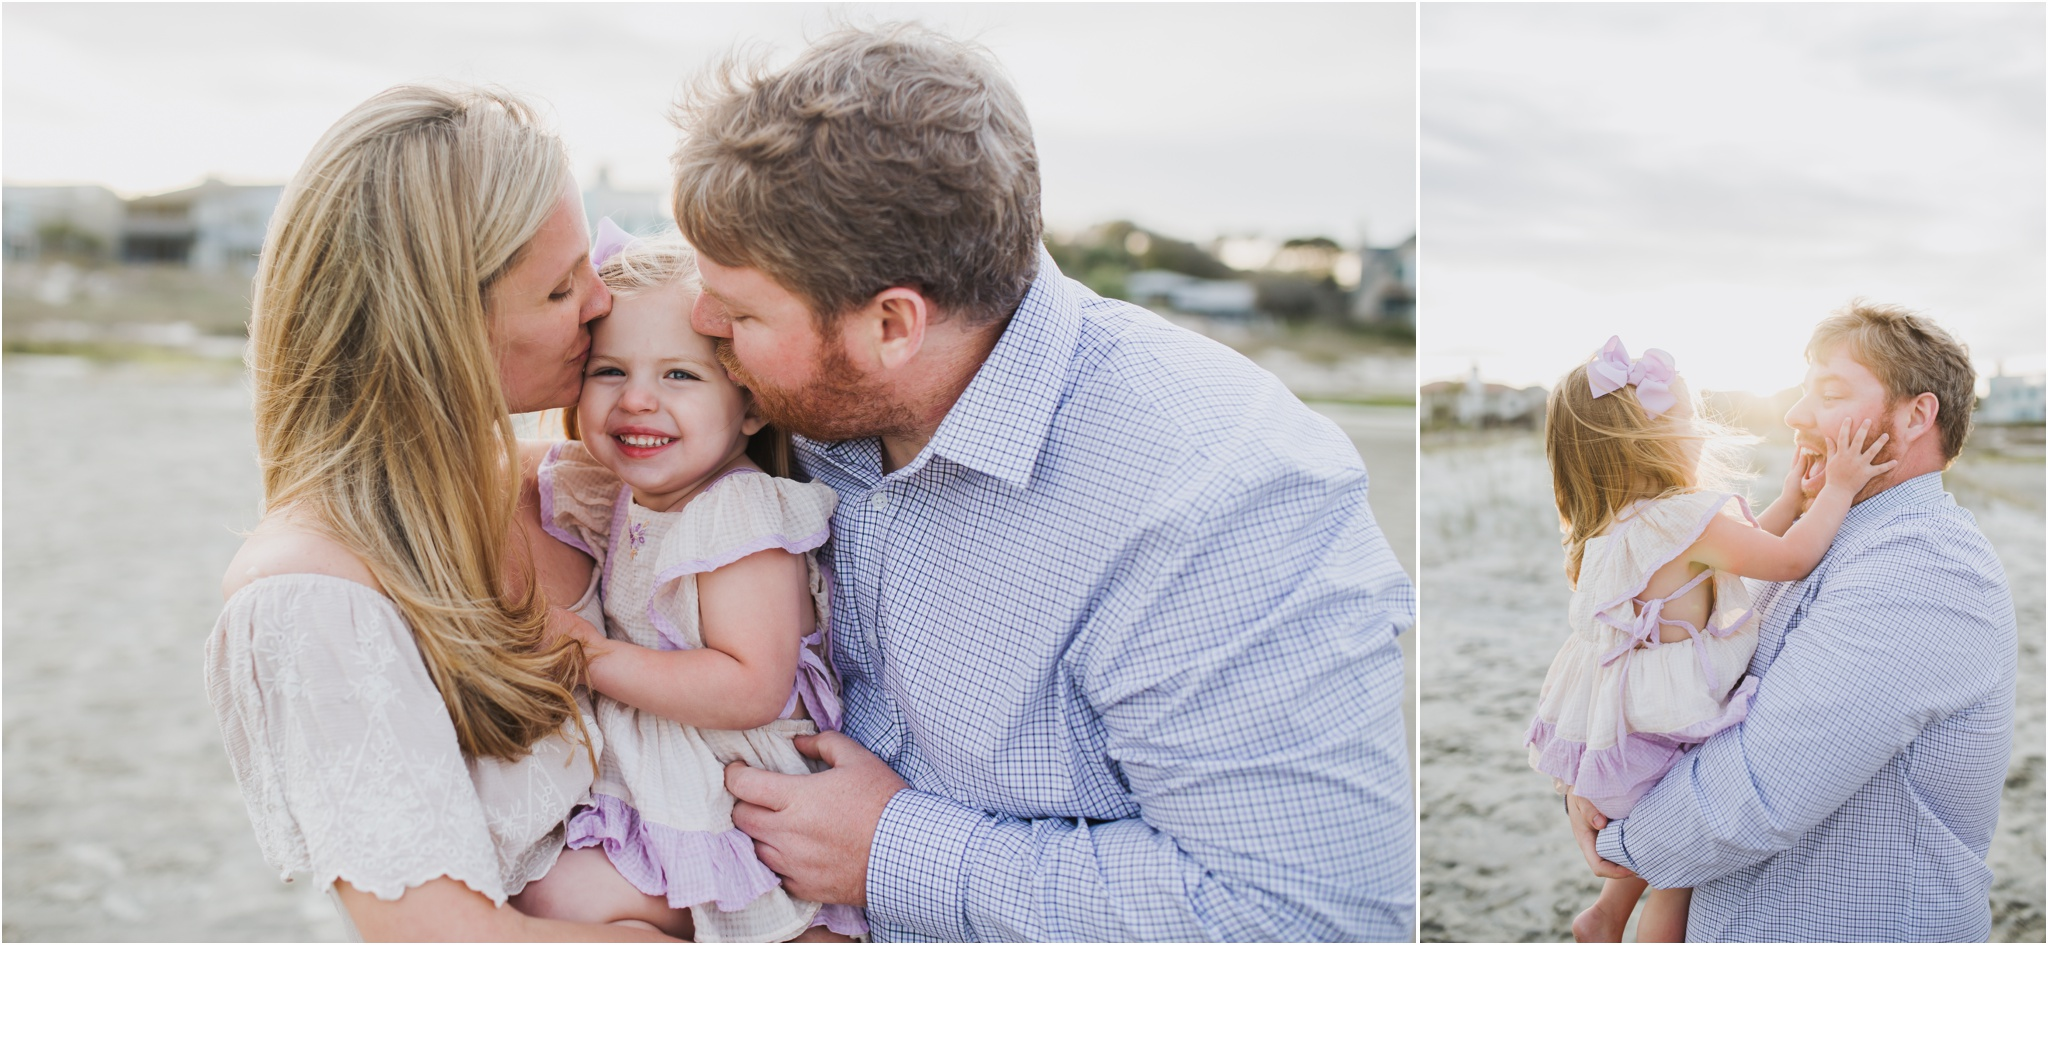 Rainey_Gregg_Photography_St._Simons_Island_Georgia_California_Wedding_Portrait_Photography_1756.jpg